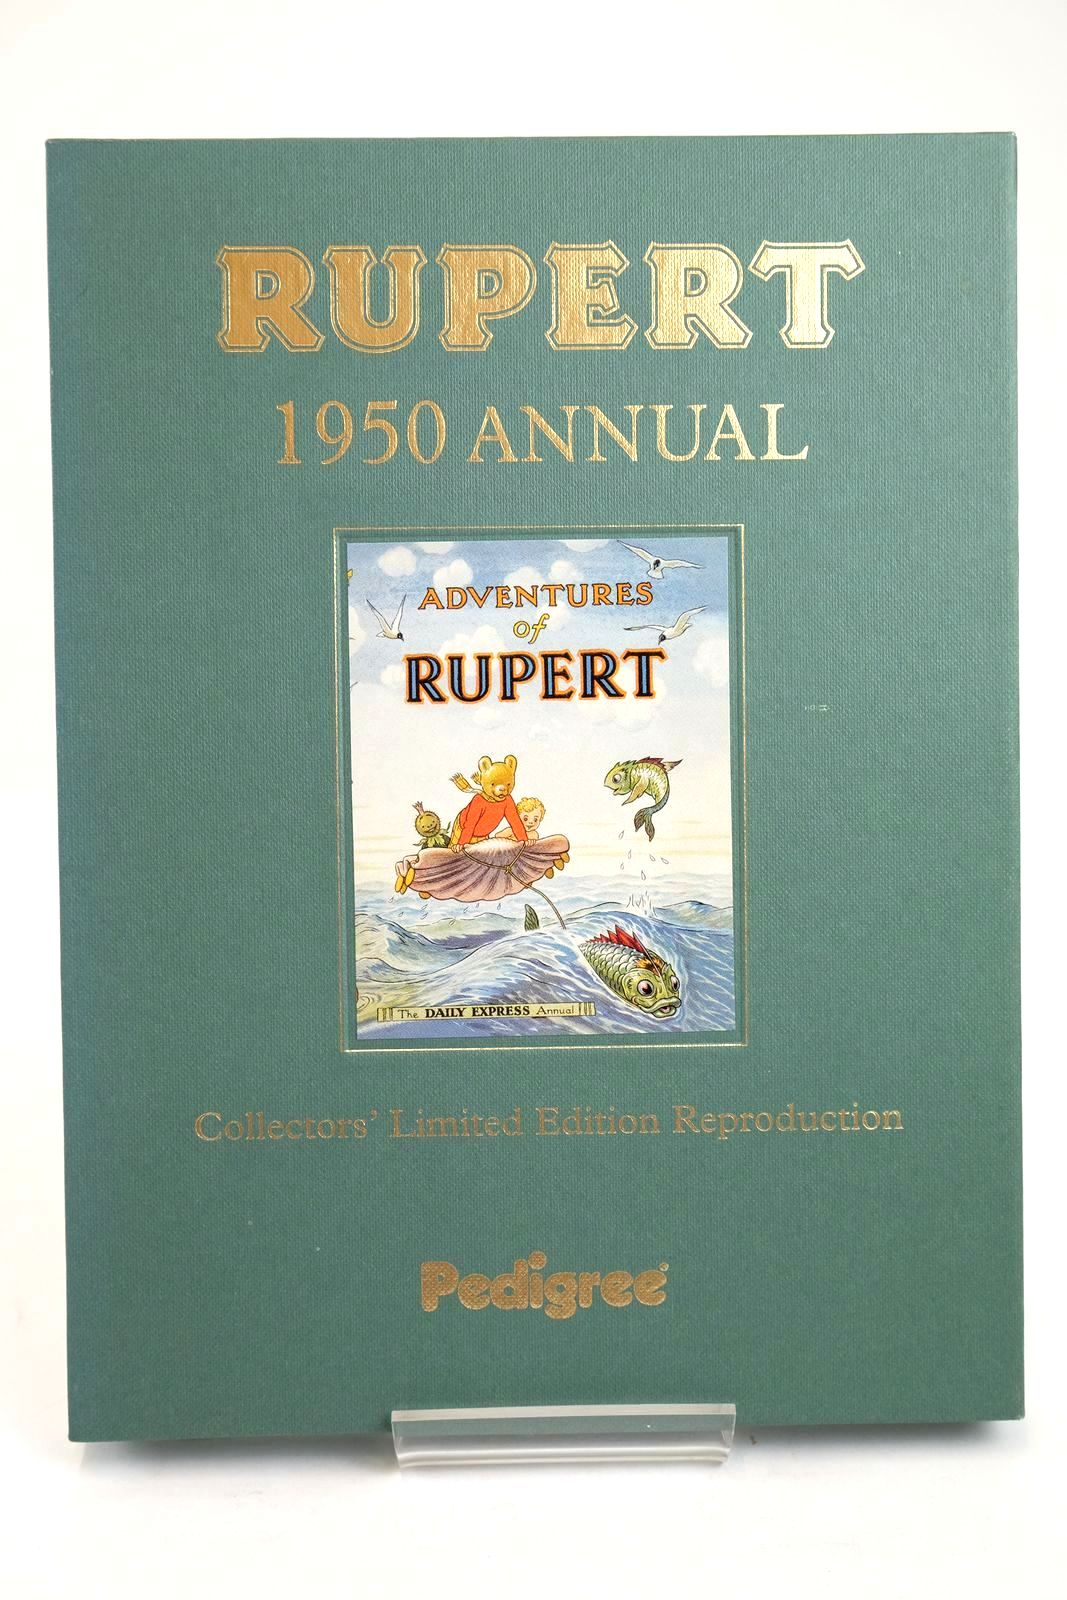 Photo of RUPERT ANNUAL 1950 (FACSIMILE) - ADVENTURES OF RUPERT written by Bestall, Alfred illustrated by Bestall, Alfred published by Pedigree Books Limited (STOCK CODE: 1319406)  for sale by Stella & Rose's Books